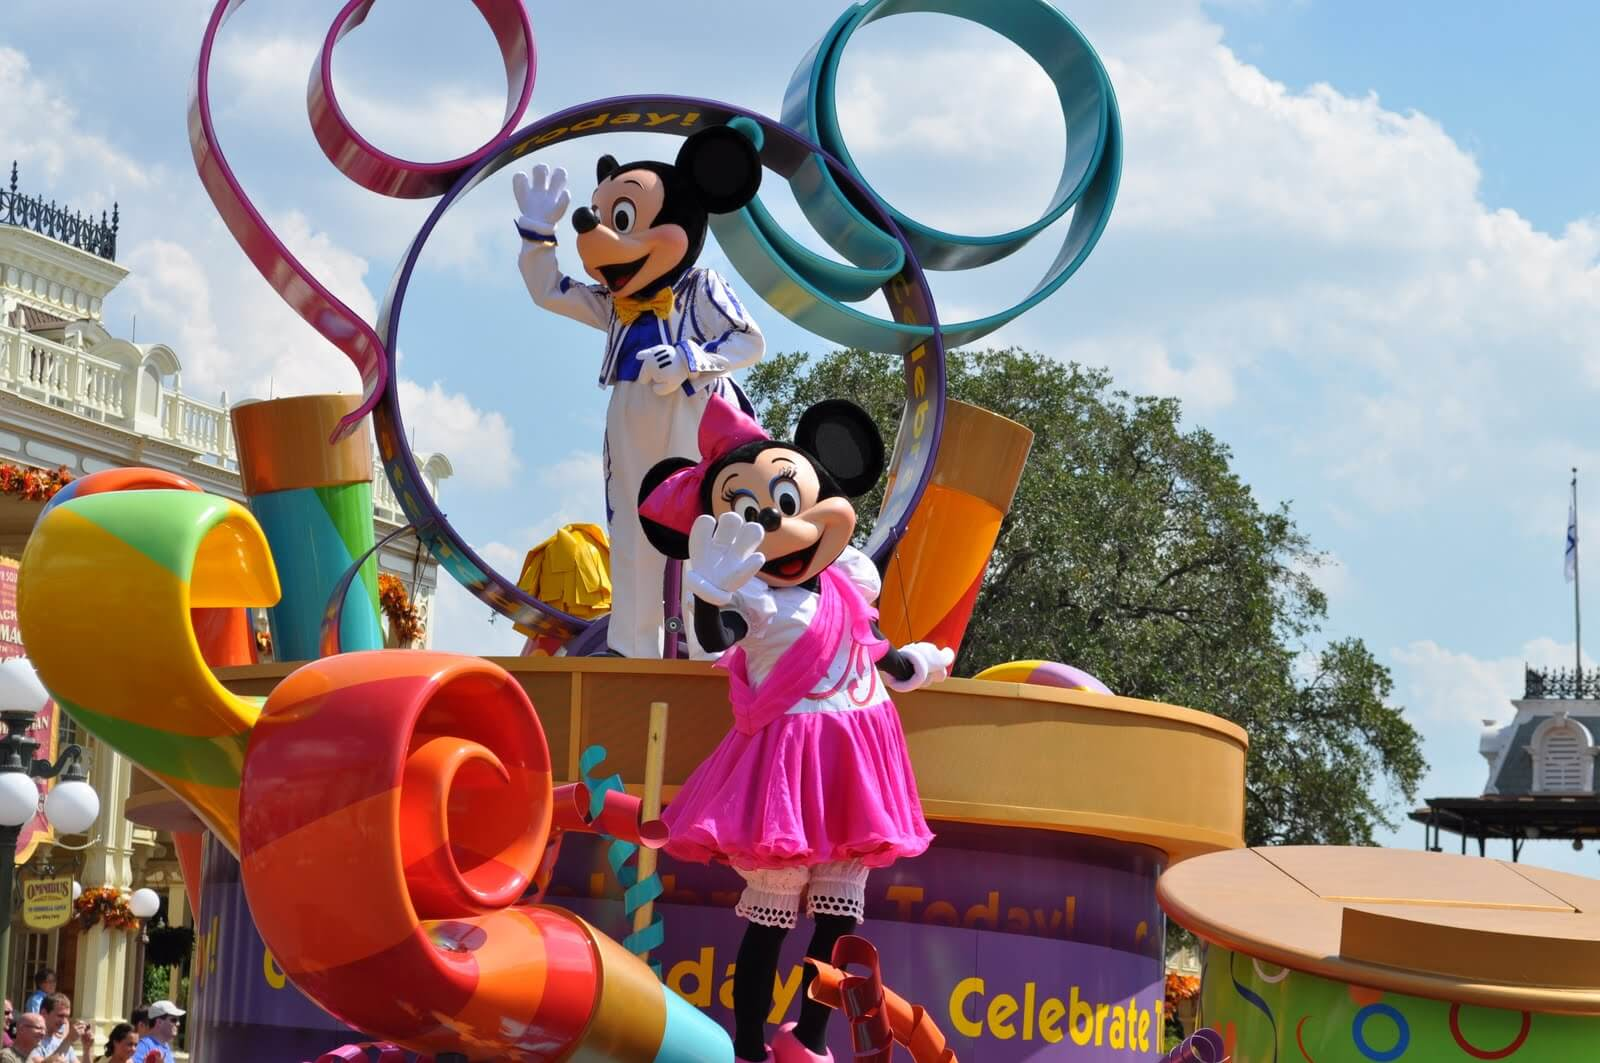 Walt Disney World Parade Guide: Celebrate a Dream Come True Parade at Magic Kingdom